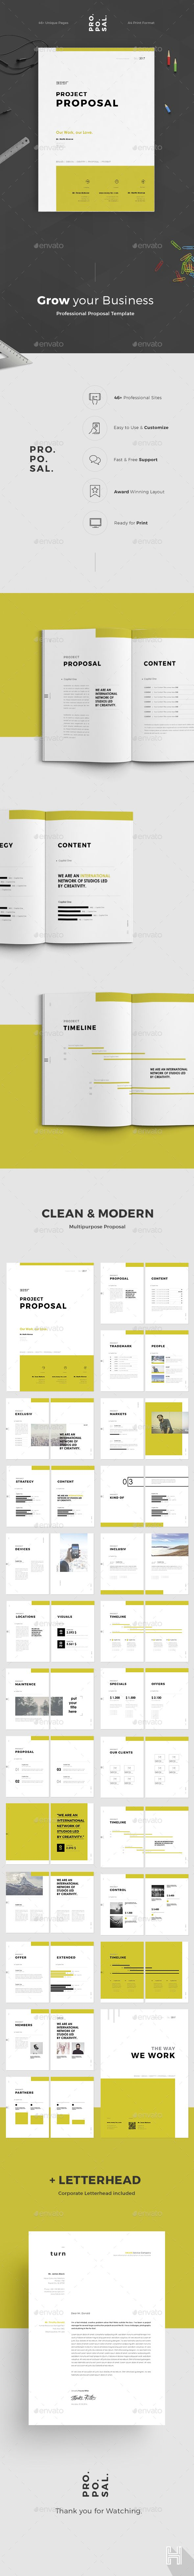 #Proposal - Proposals & #Invoices #Stationery Download here: https://graphicriver.net/item/proposal/19536316?ref=alena994